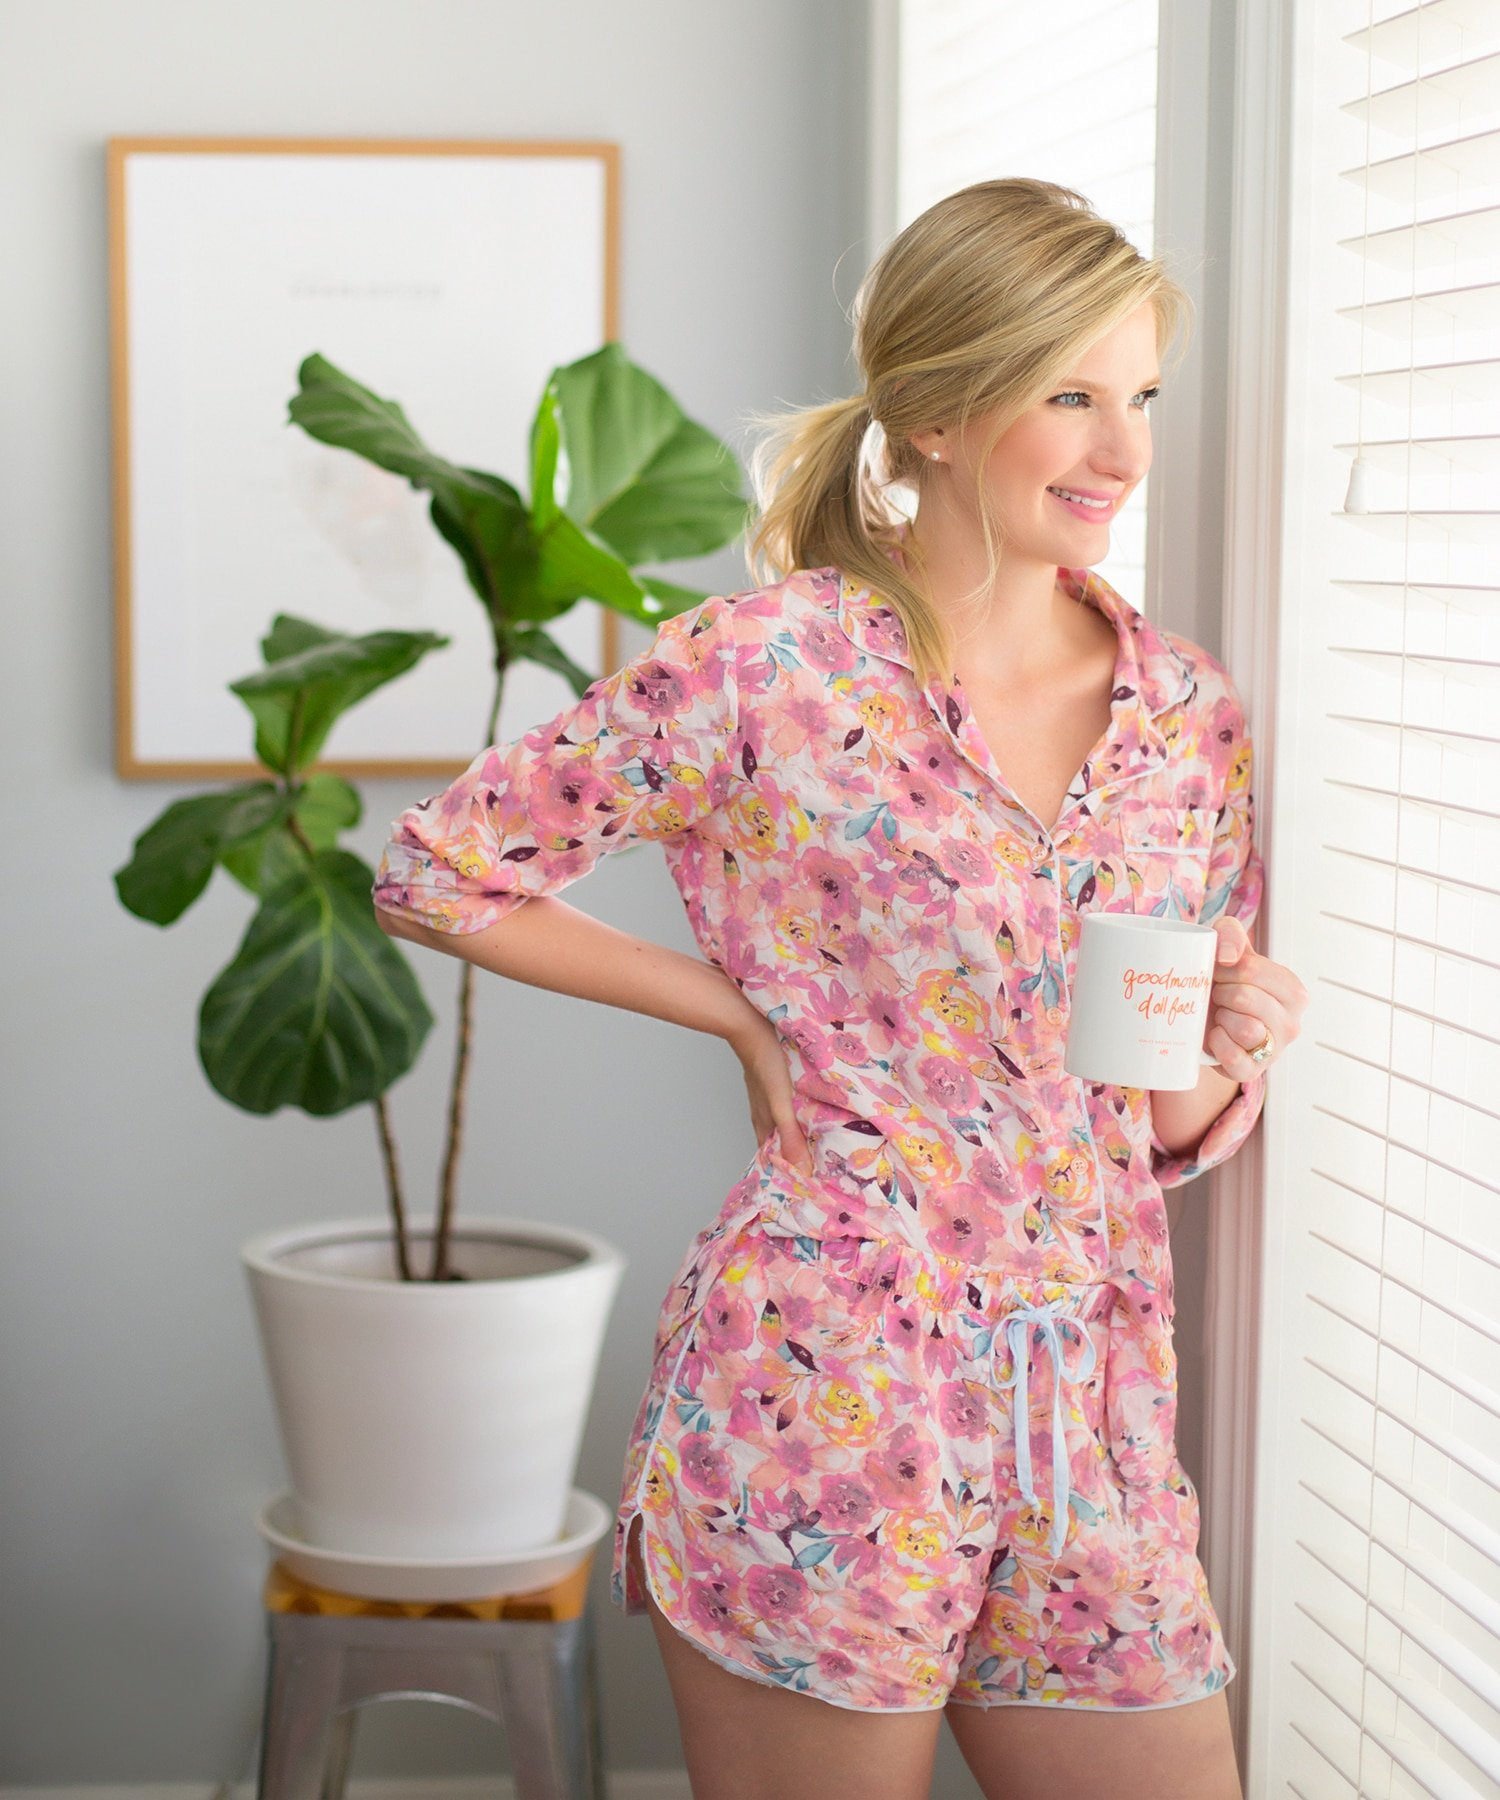 Blogger Ashley Brooke found the best pair of pajamas from Target! | www.ashleybrookedesigns.com